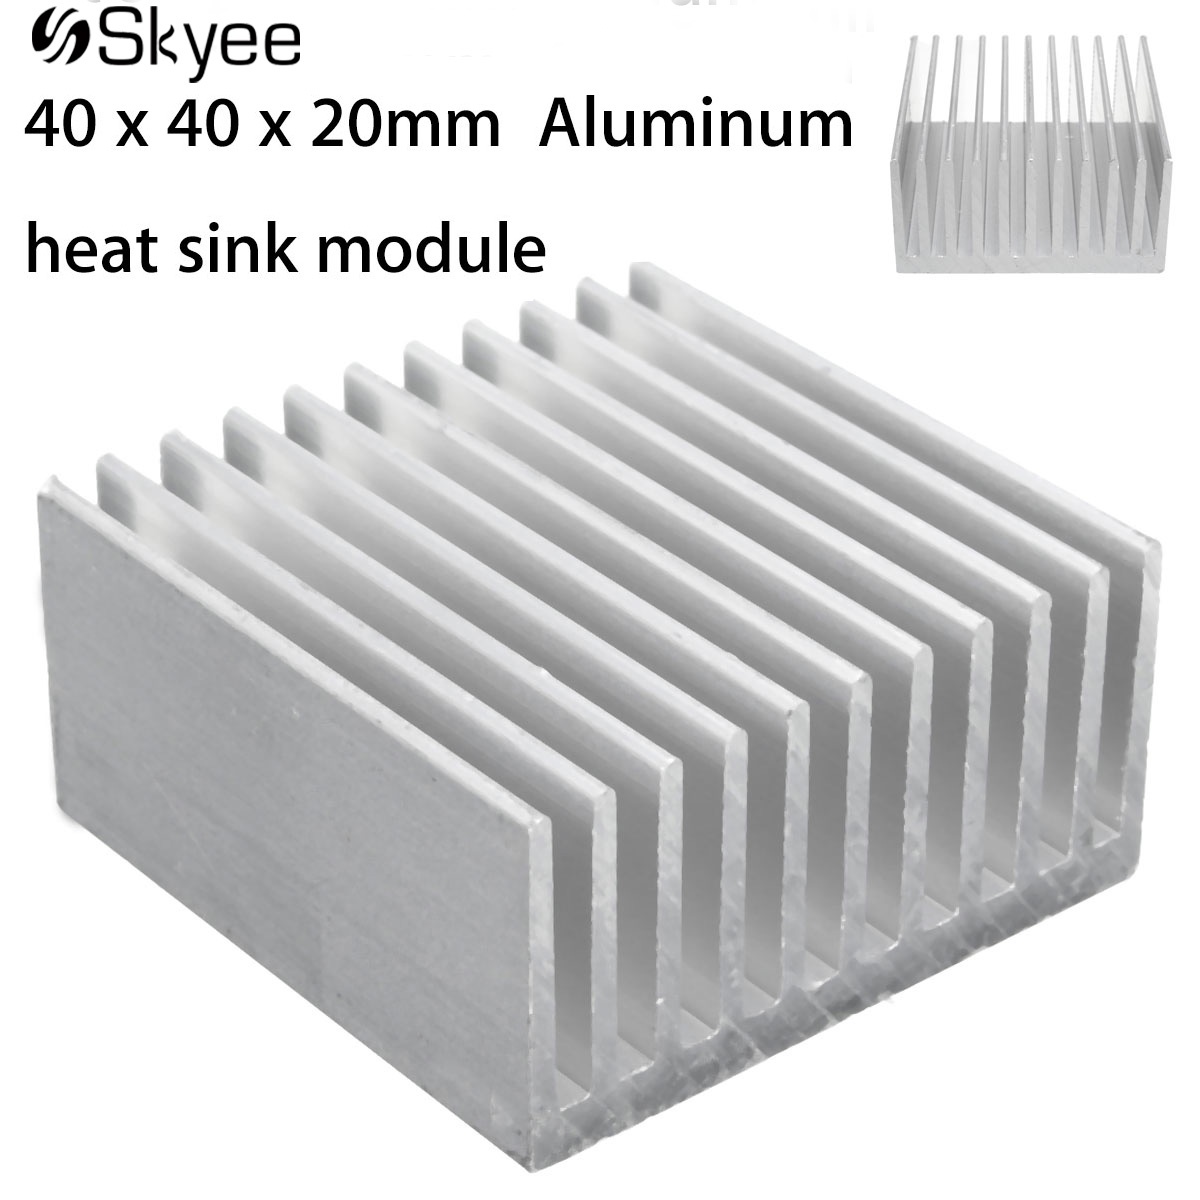 40 x 40 x 20mm Aluminum Heat Sink IC Heatsink Cooling Fin For CPU LED Power Active Component 10 pcs black aluminum cooler radiator heat sink heatsink 20mm x 20mm x 10mm